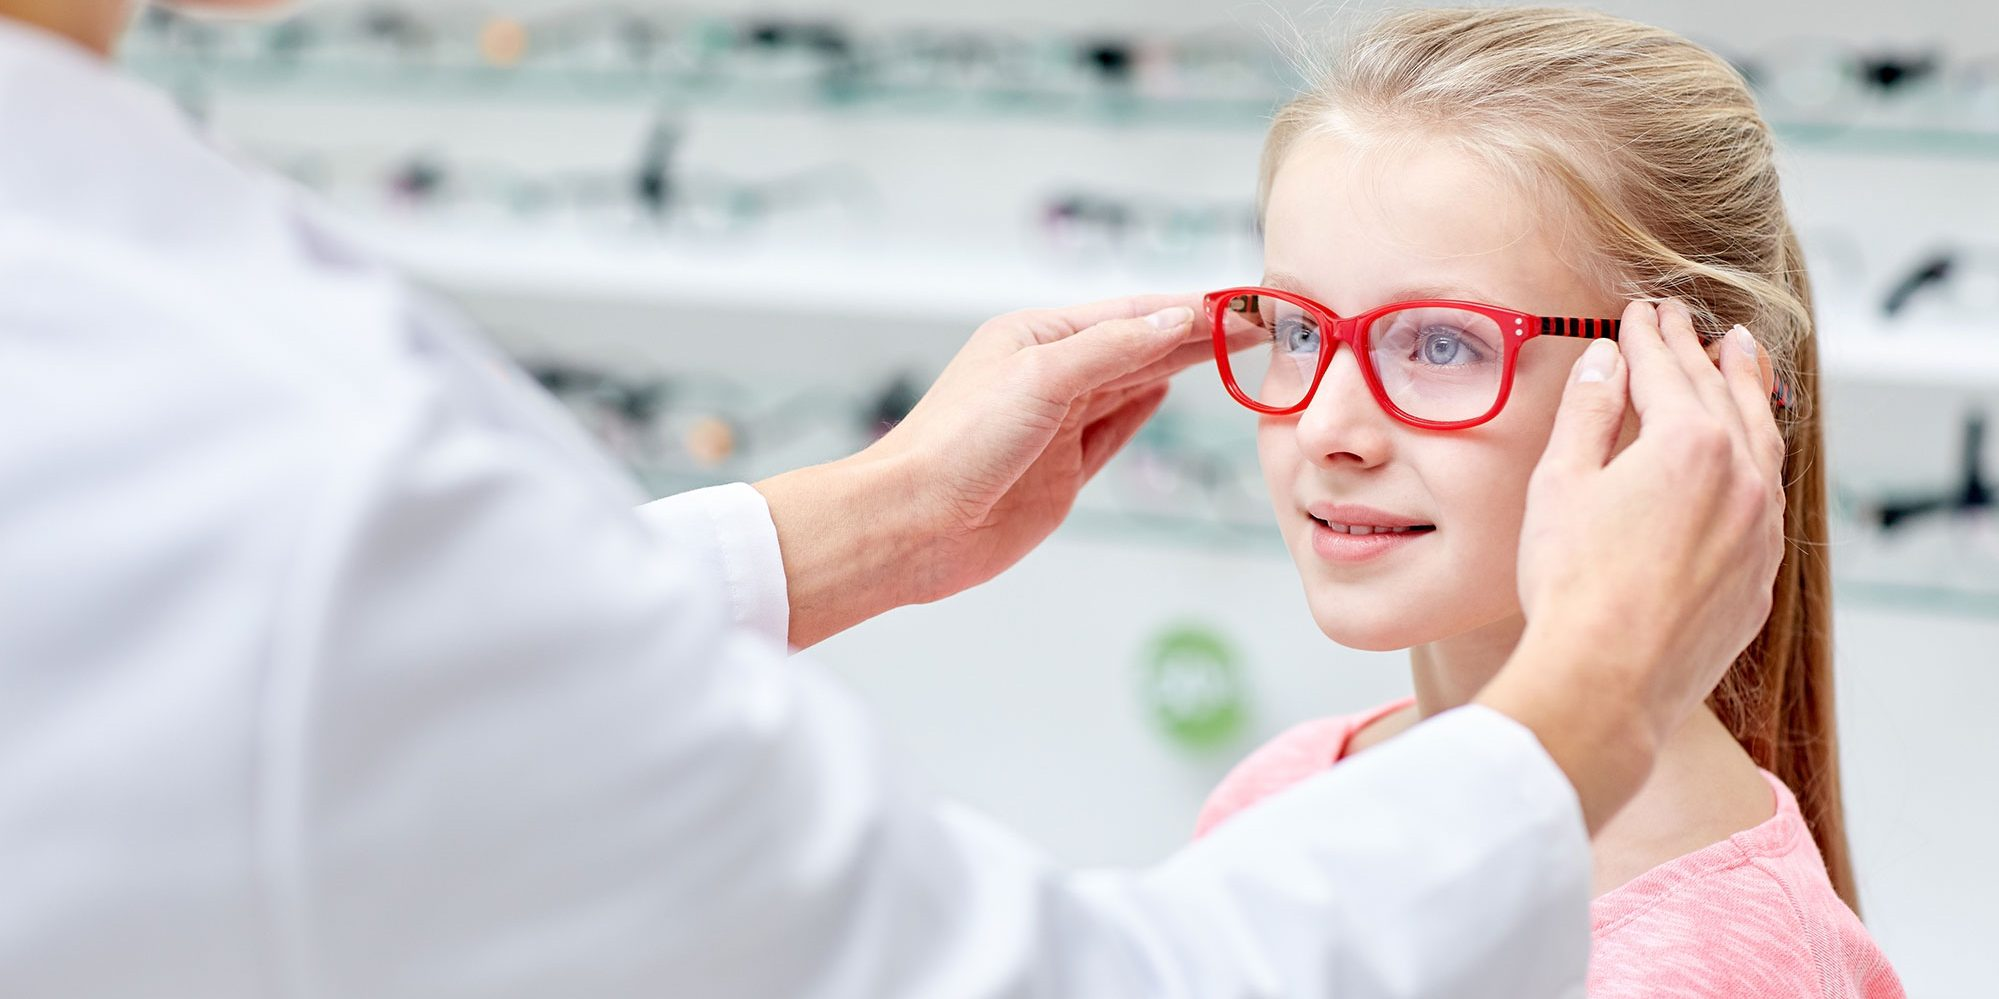 A young girl trying on glasses frames with an optician in an optical shop